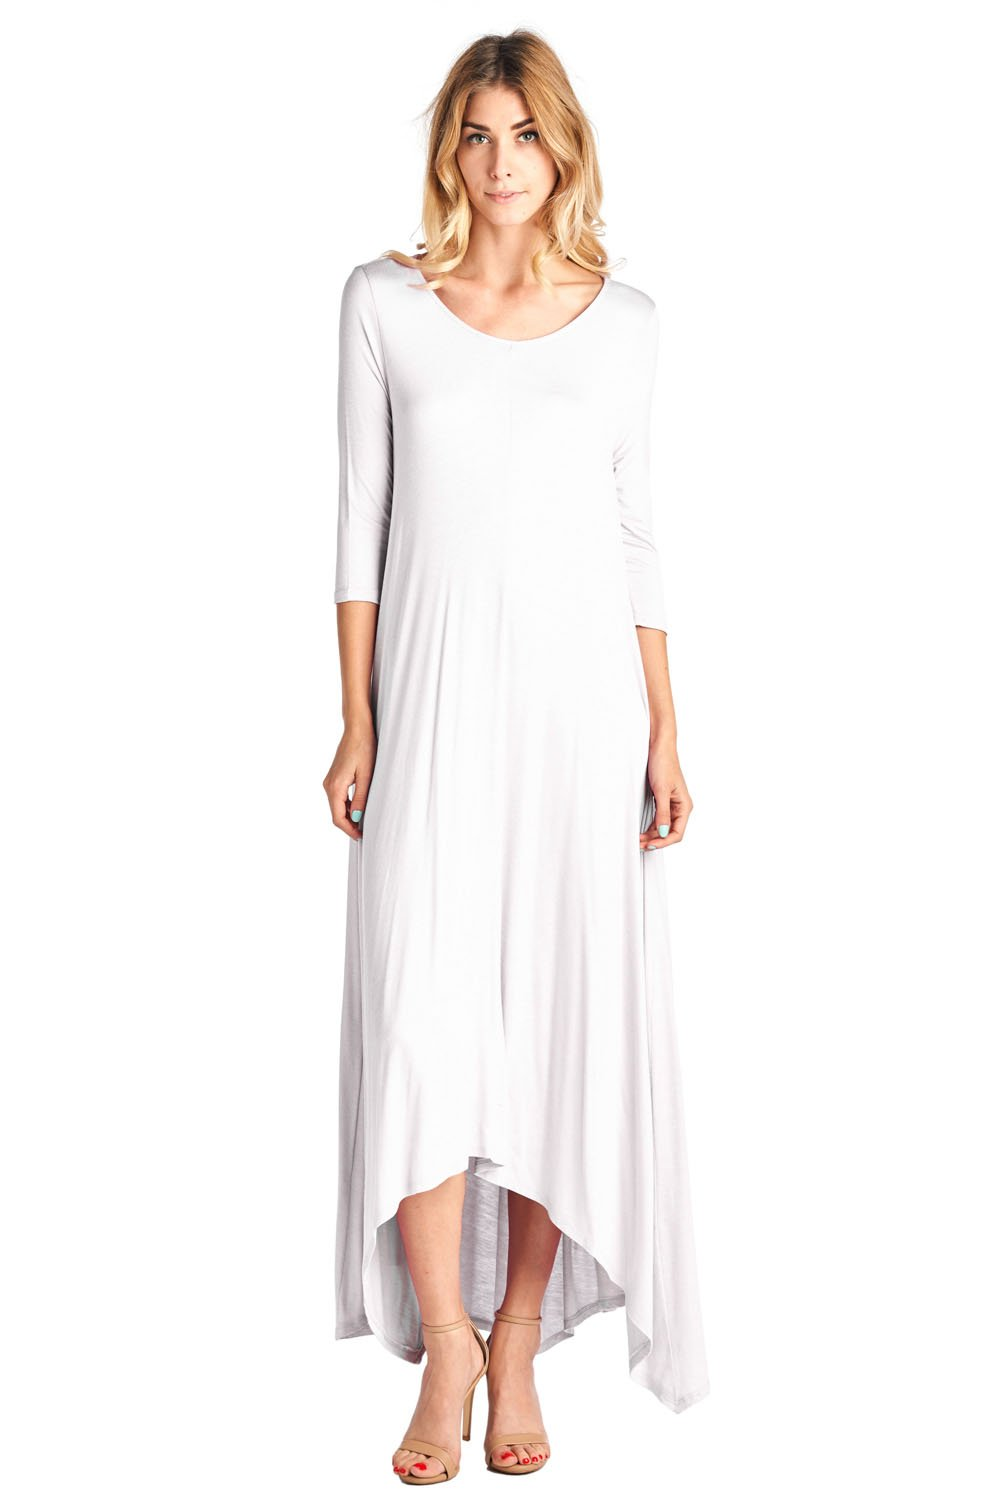 12 Ami Solid 3/4 Sleeve Pocket Loose Maxi Dress White 1X